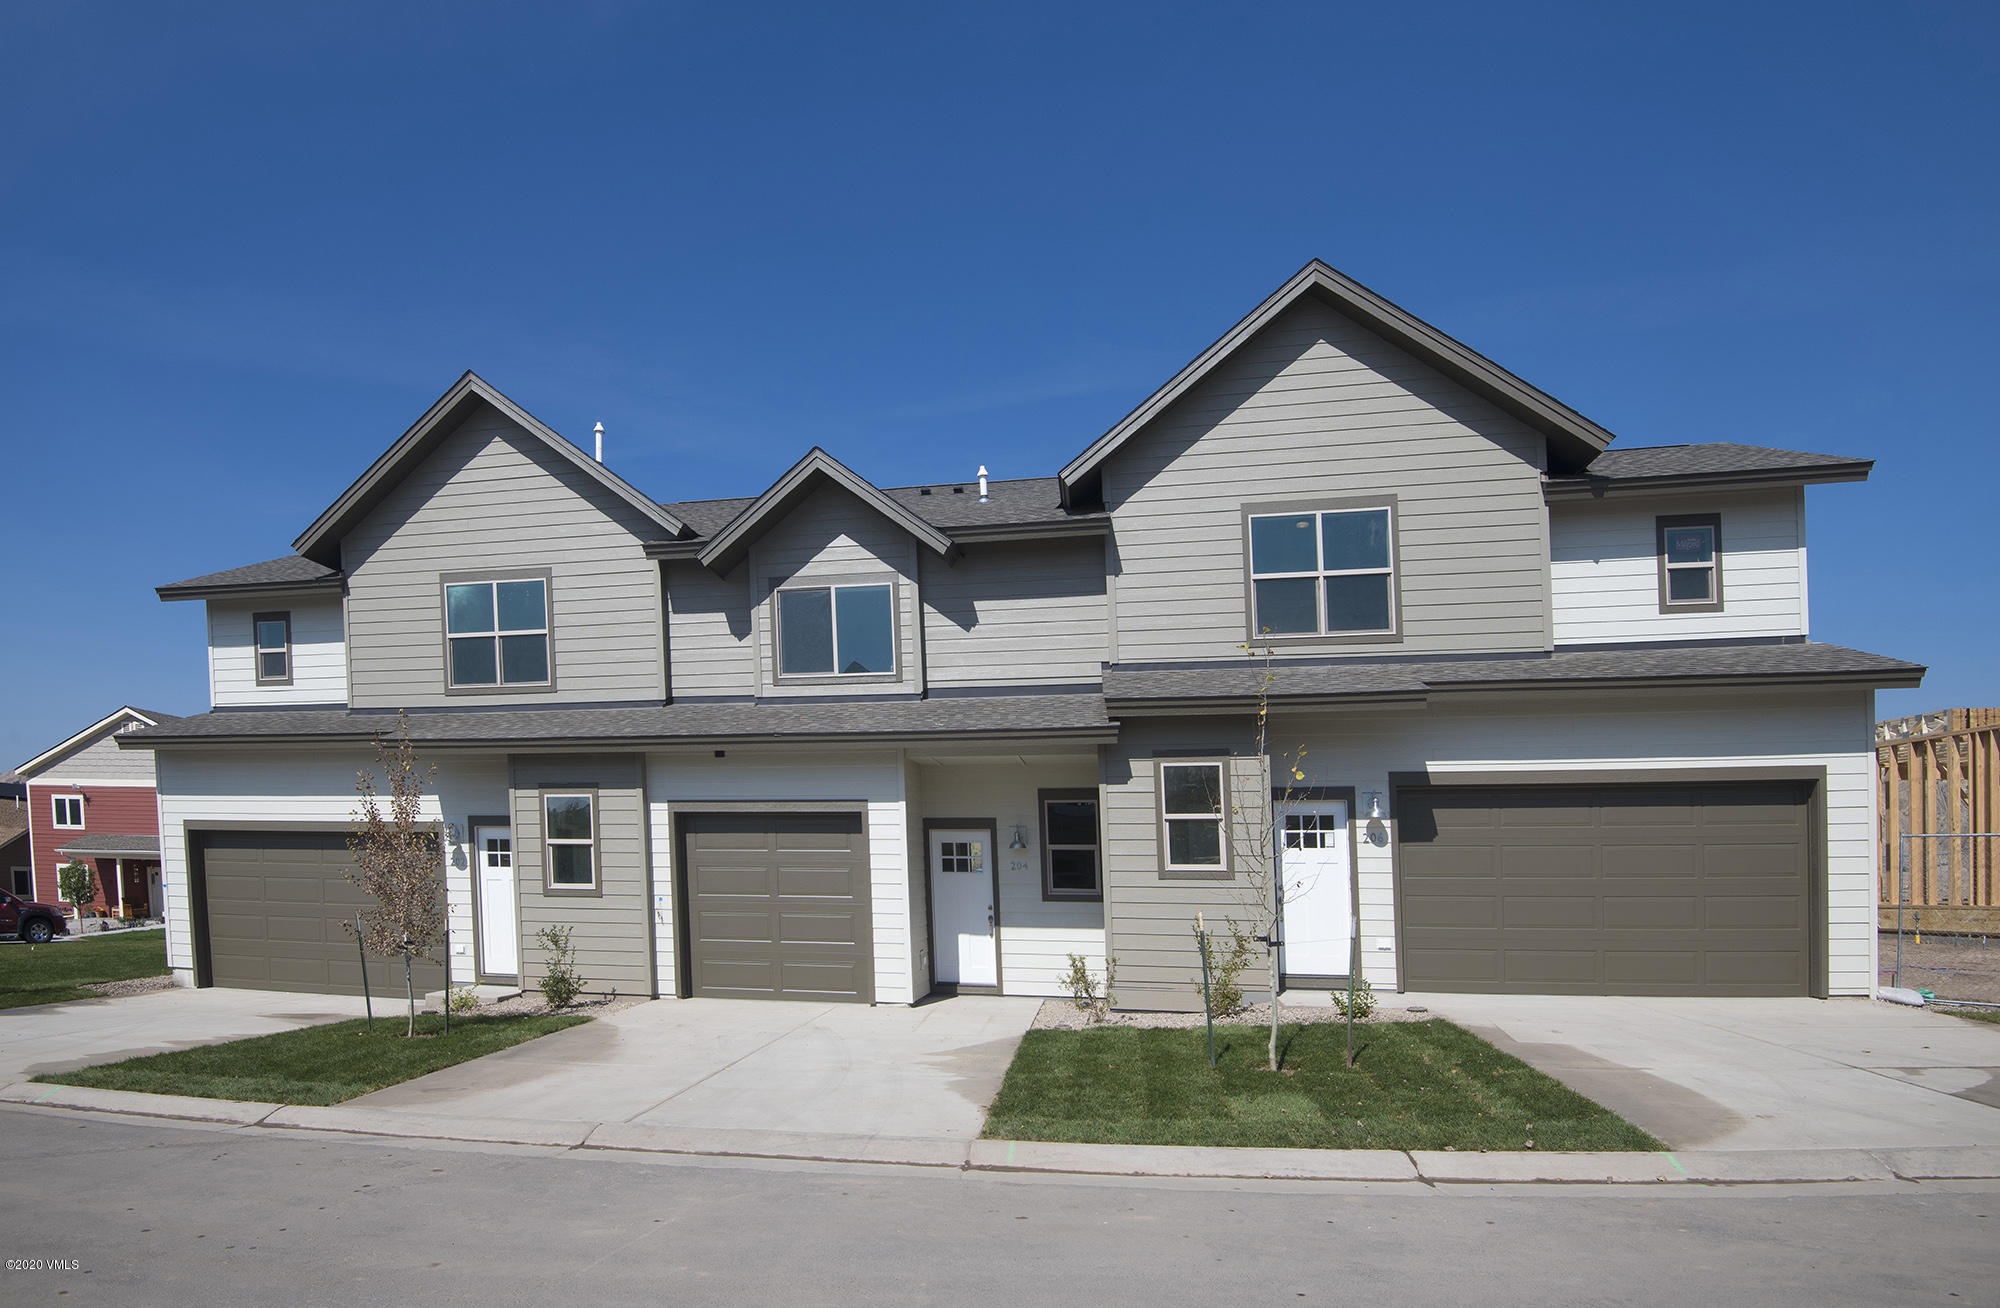 BRAND NEW TOWNHOME! Well-designed, site-built, 3 bedroom, 2.5 bath home with an attached 1-car garage. Incredibly convenient location close to Costco, Gypsum Rec Ctr, and Eagle County Airport. Only minutes to world-class recreation of all types. Standard finishes include vaulted ceilings, LVT flooring, laminate countertops, kitchen pantry, & Whirlpool appliances. Upgrades are available as well! Laundry room conveniently located on the bedroom level. Interior unit with an amazing price. WELCOME!https://my.matterport.com/show/?m=fB91R2FgCiF&brand=0